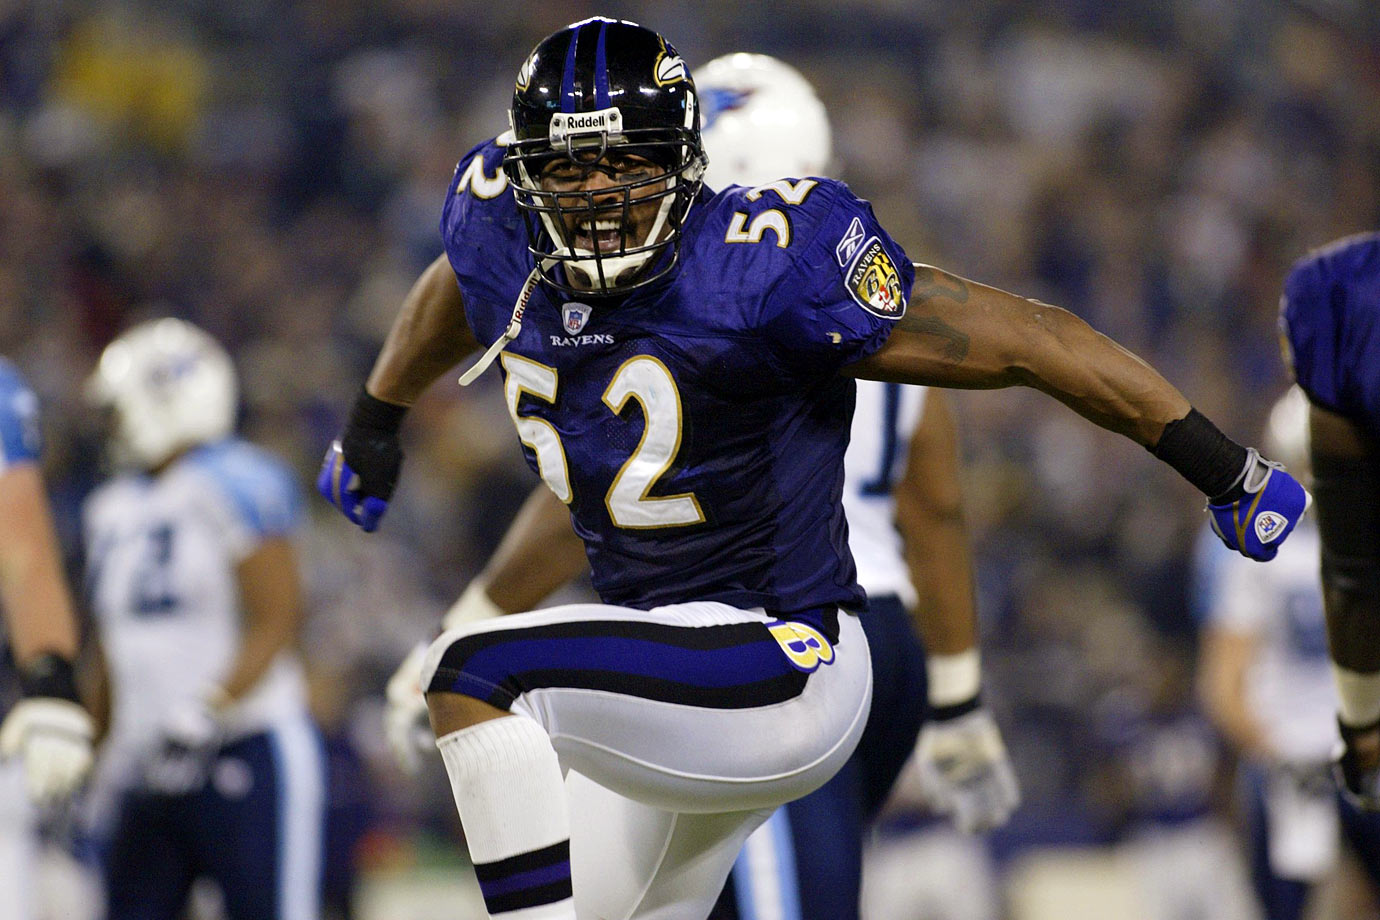 Keeping things on the field here, Lewis's 2000 season may have been the best by any linebacker in league history. He was the Defensive Player of the Year and the Super Bowl MVP and was virtually unstoppable throughout the year. Even at the end of his career, when his physical gifts had diminished, he was the Ravens' supreme motivational force.